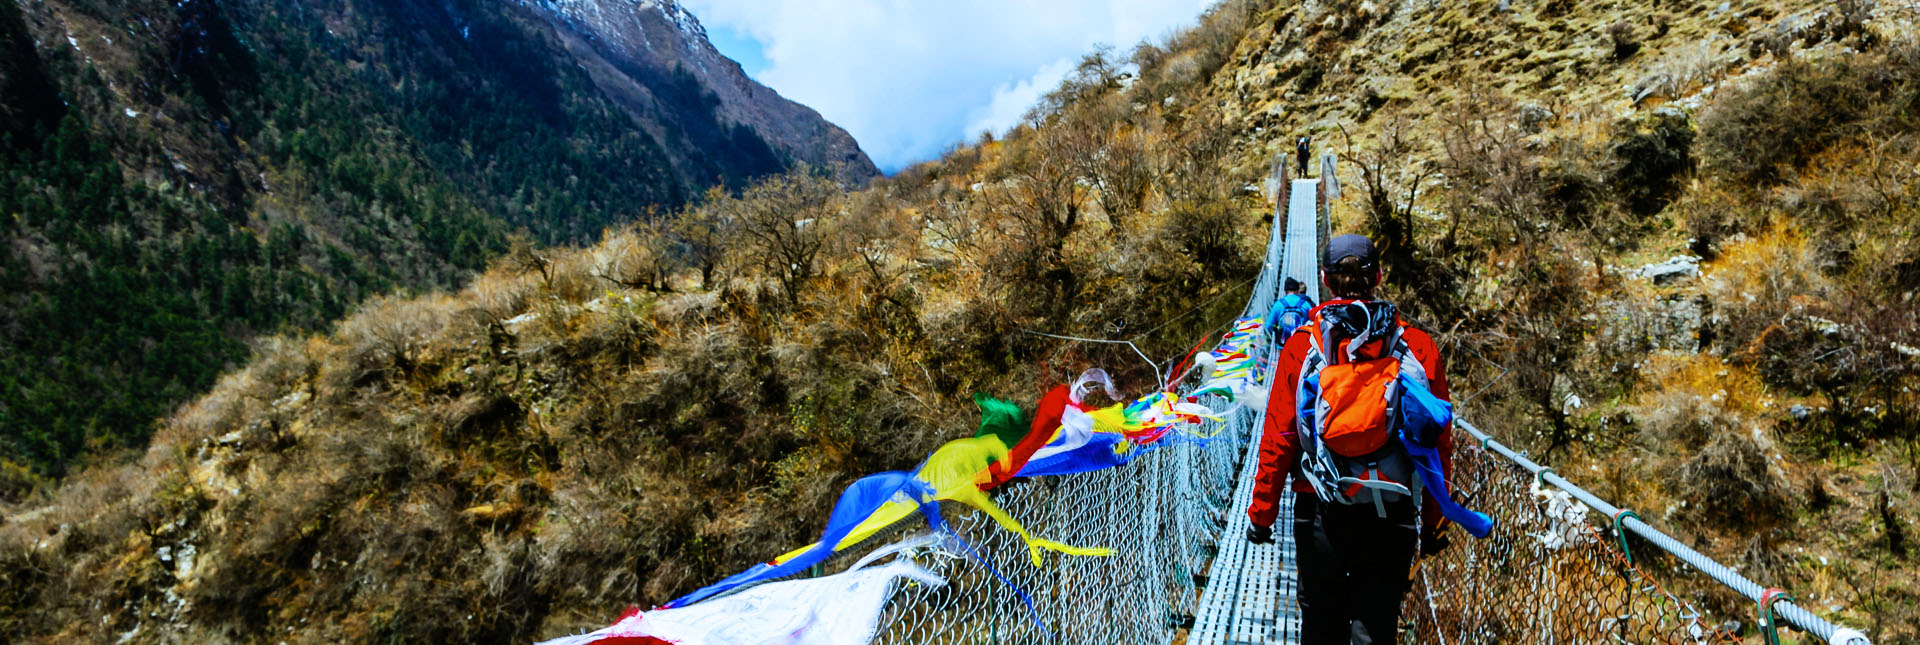 crossing a suspension bridge during the trek